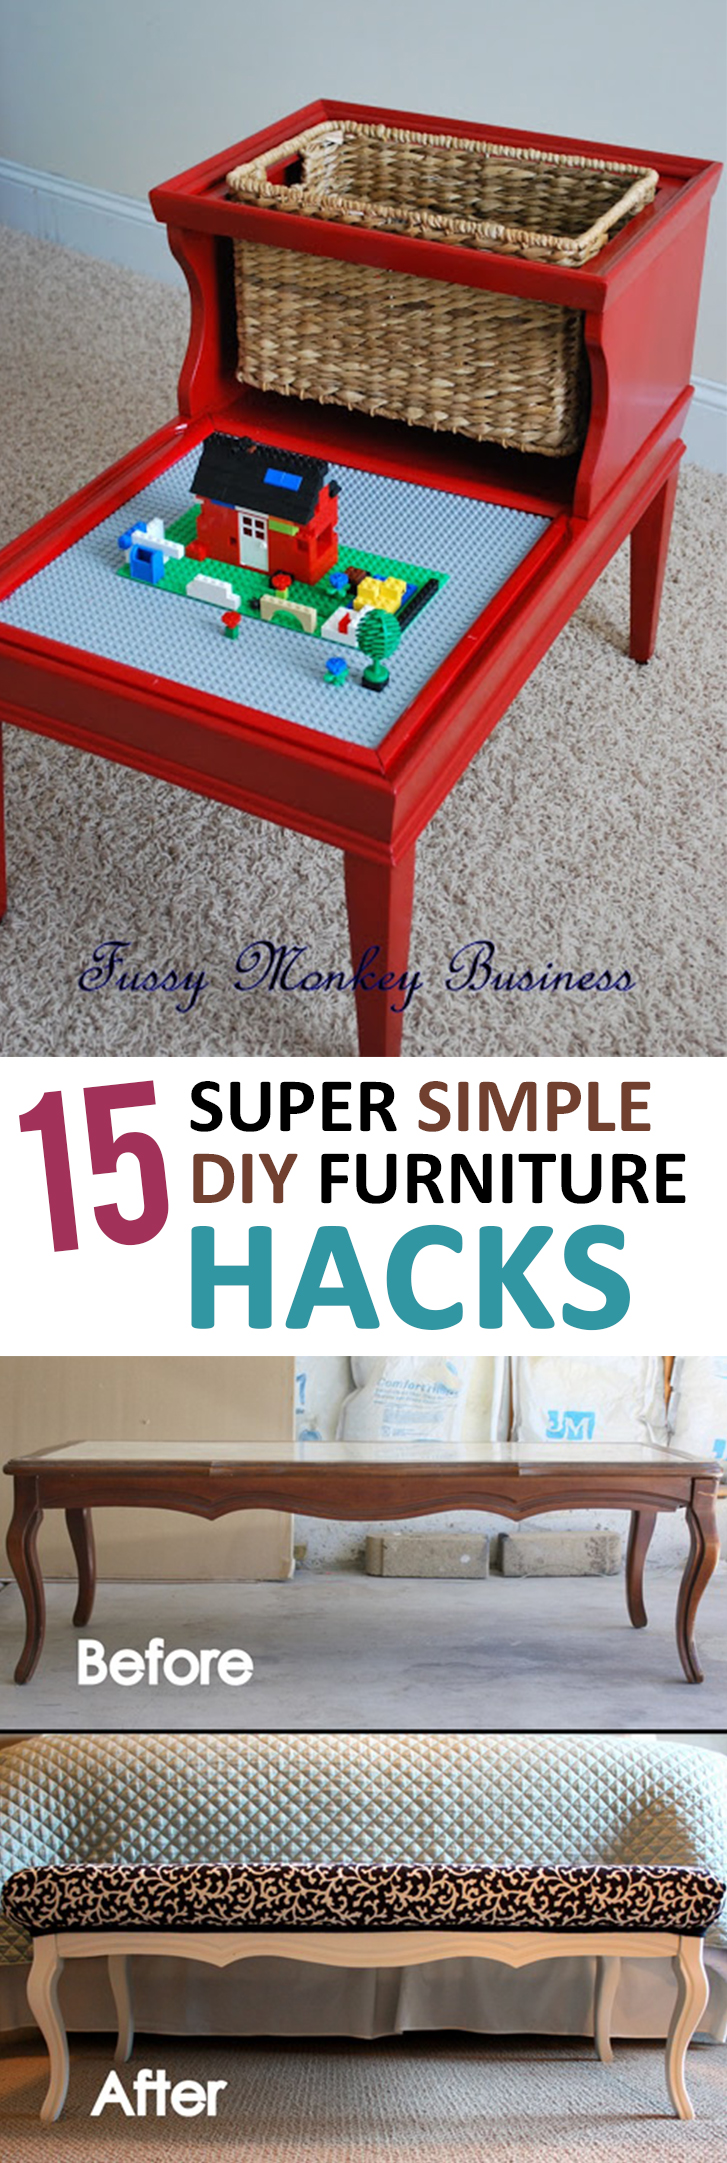 DIY Furniture, DIY Furniture Hacks, DIY Furniture Tips And Tricks, Furniture,  Homemade